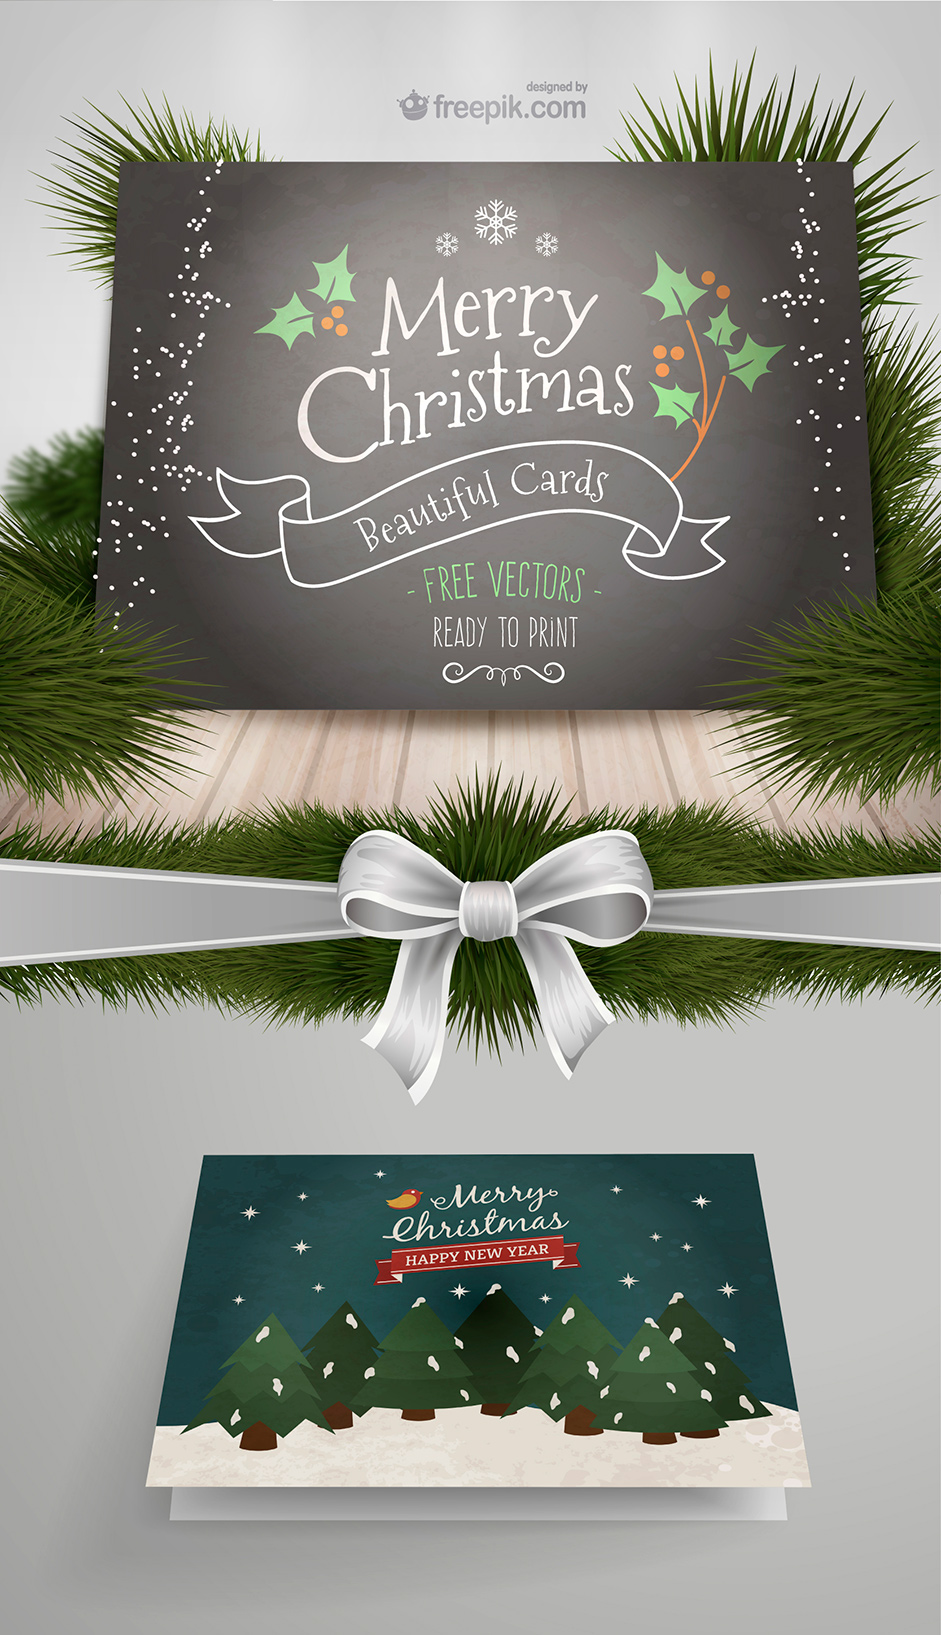 10 New Xmas Cards from Freepik and More Free Resources for ...